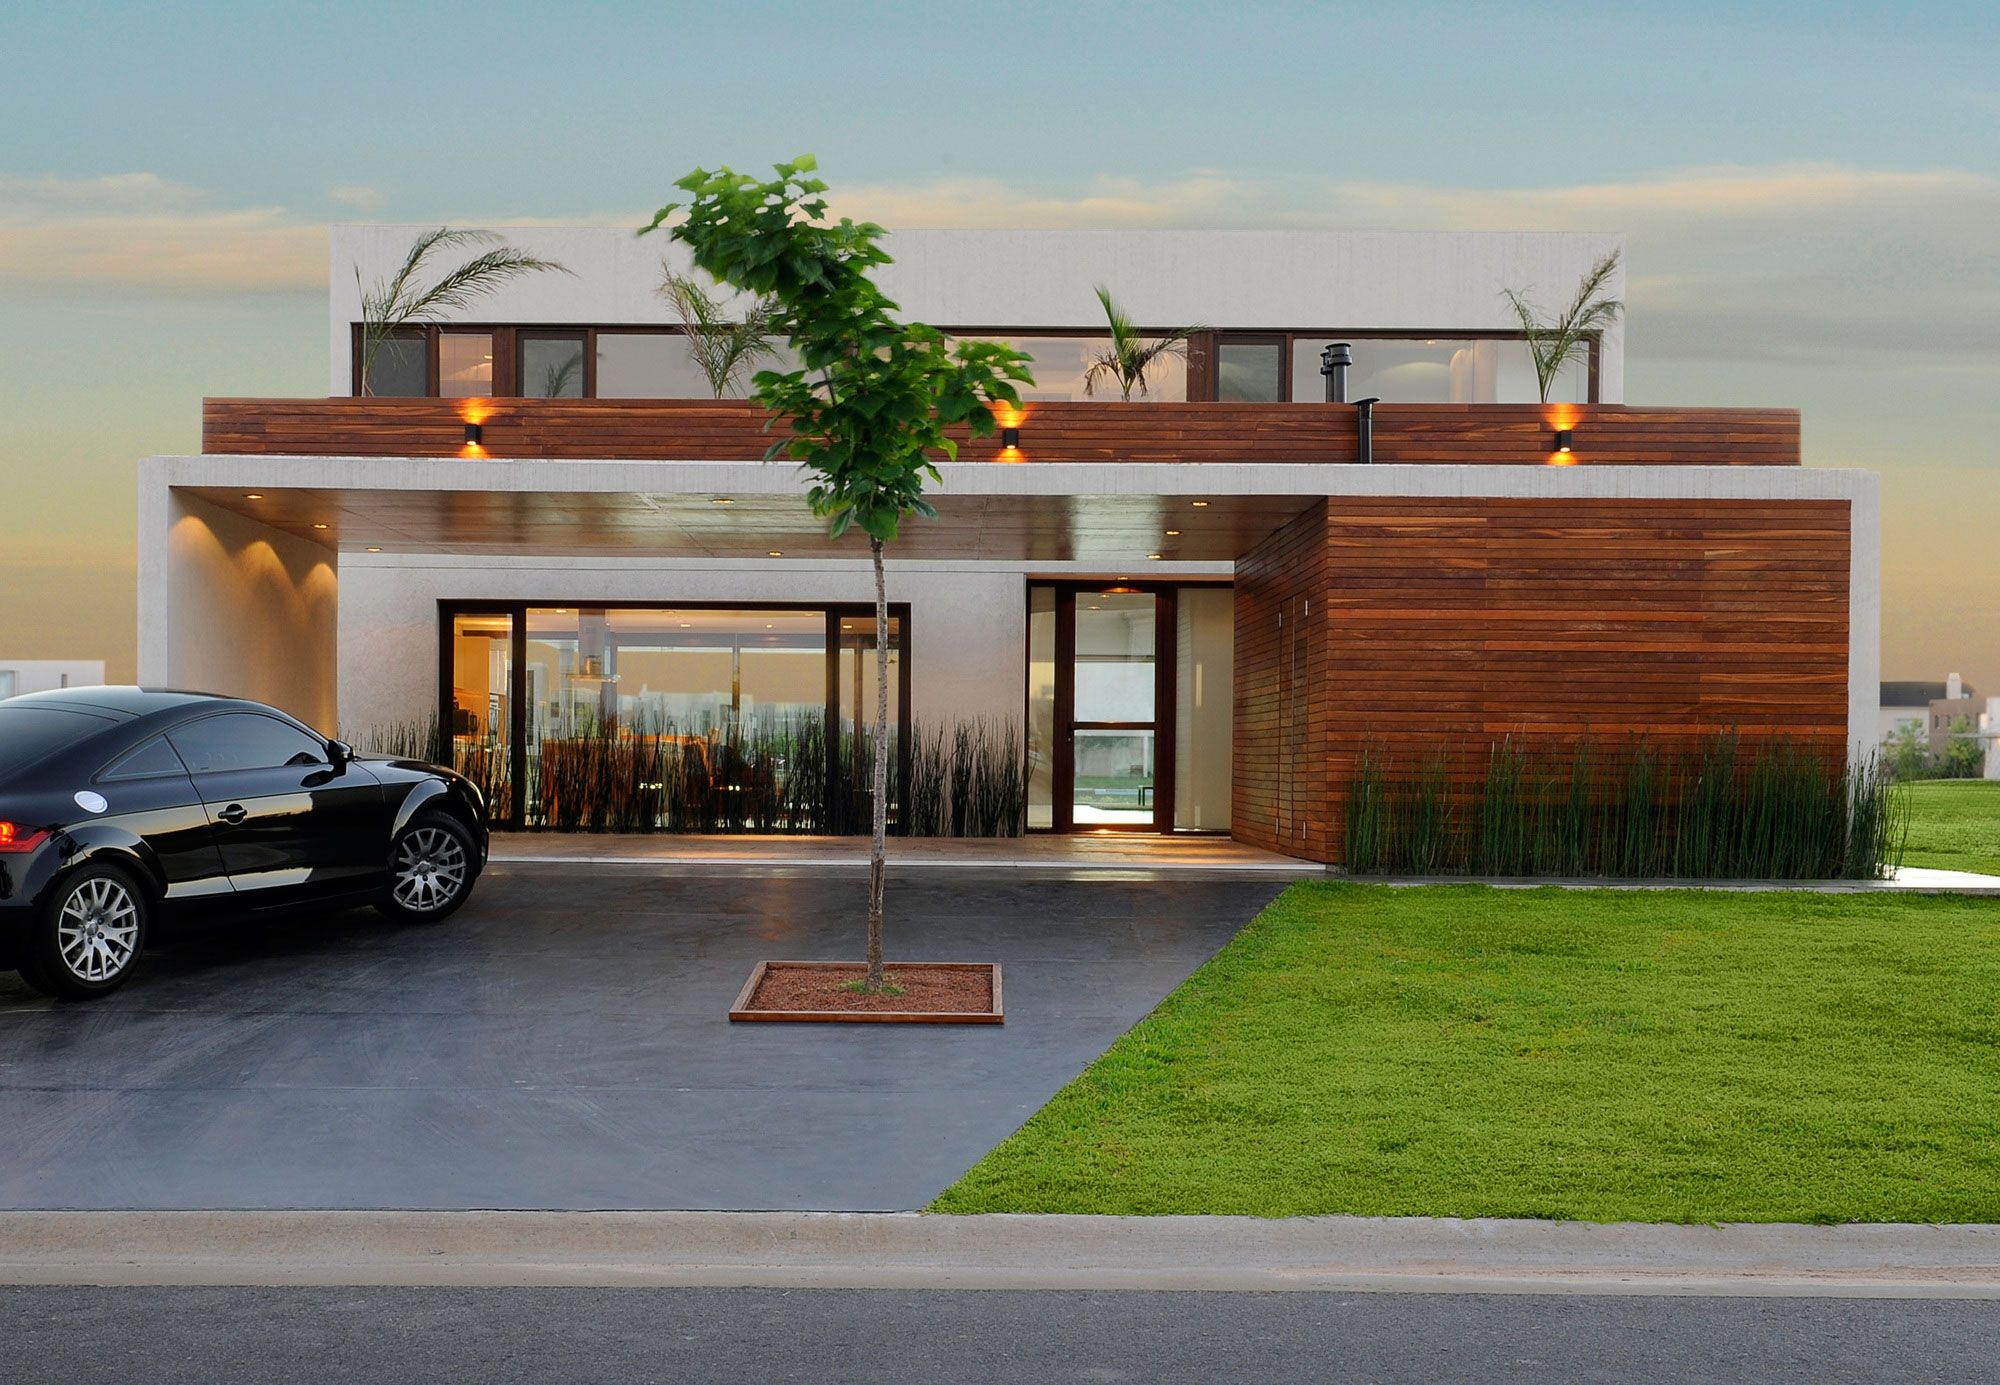 Wenatchee real estate offices free home design ideas images - Connect Homes Sustainable Modern Prefab Homes Green Sustainable Architectural Prefab Modern Homes Based In Los Angeles California Affordab